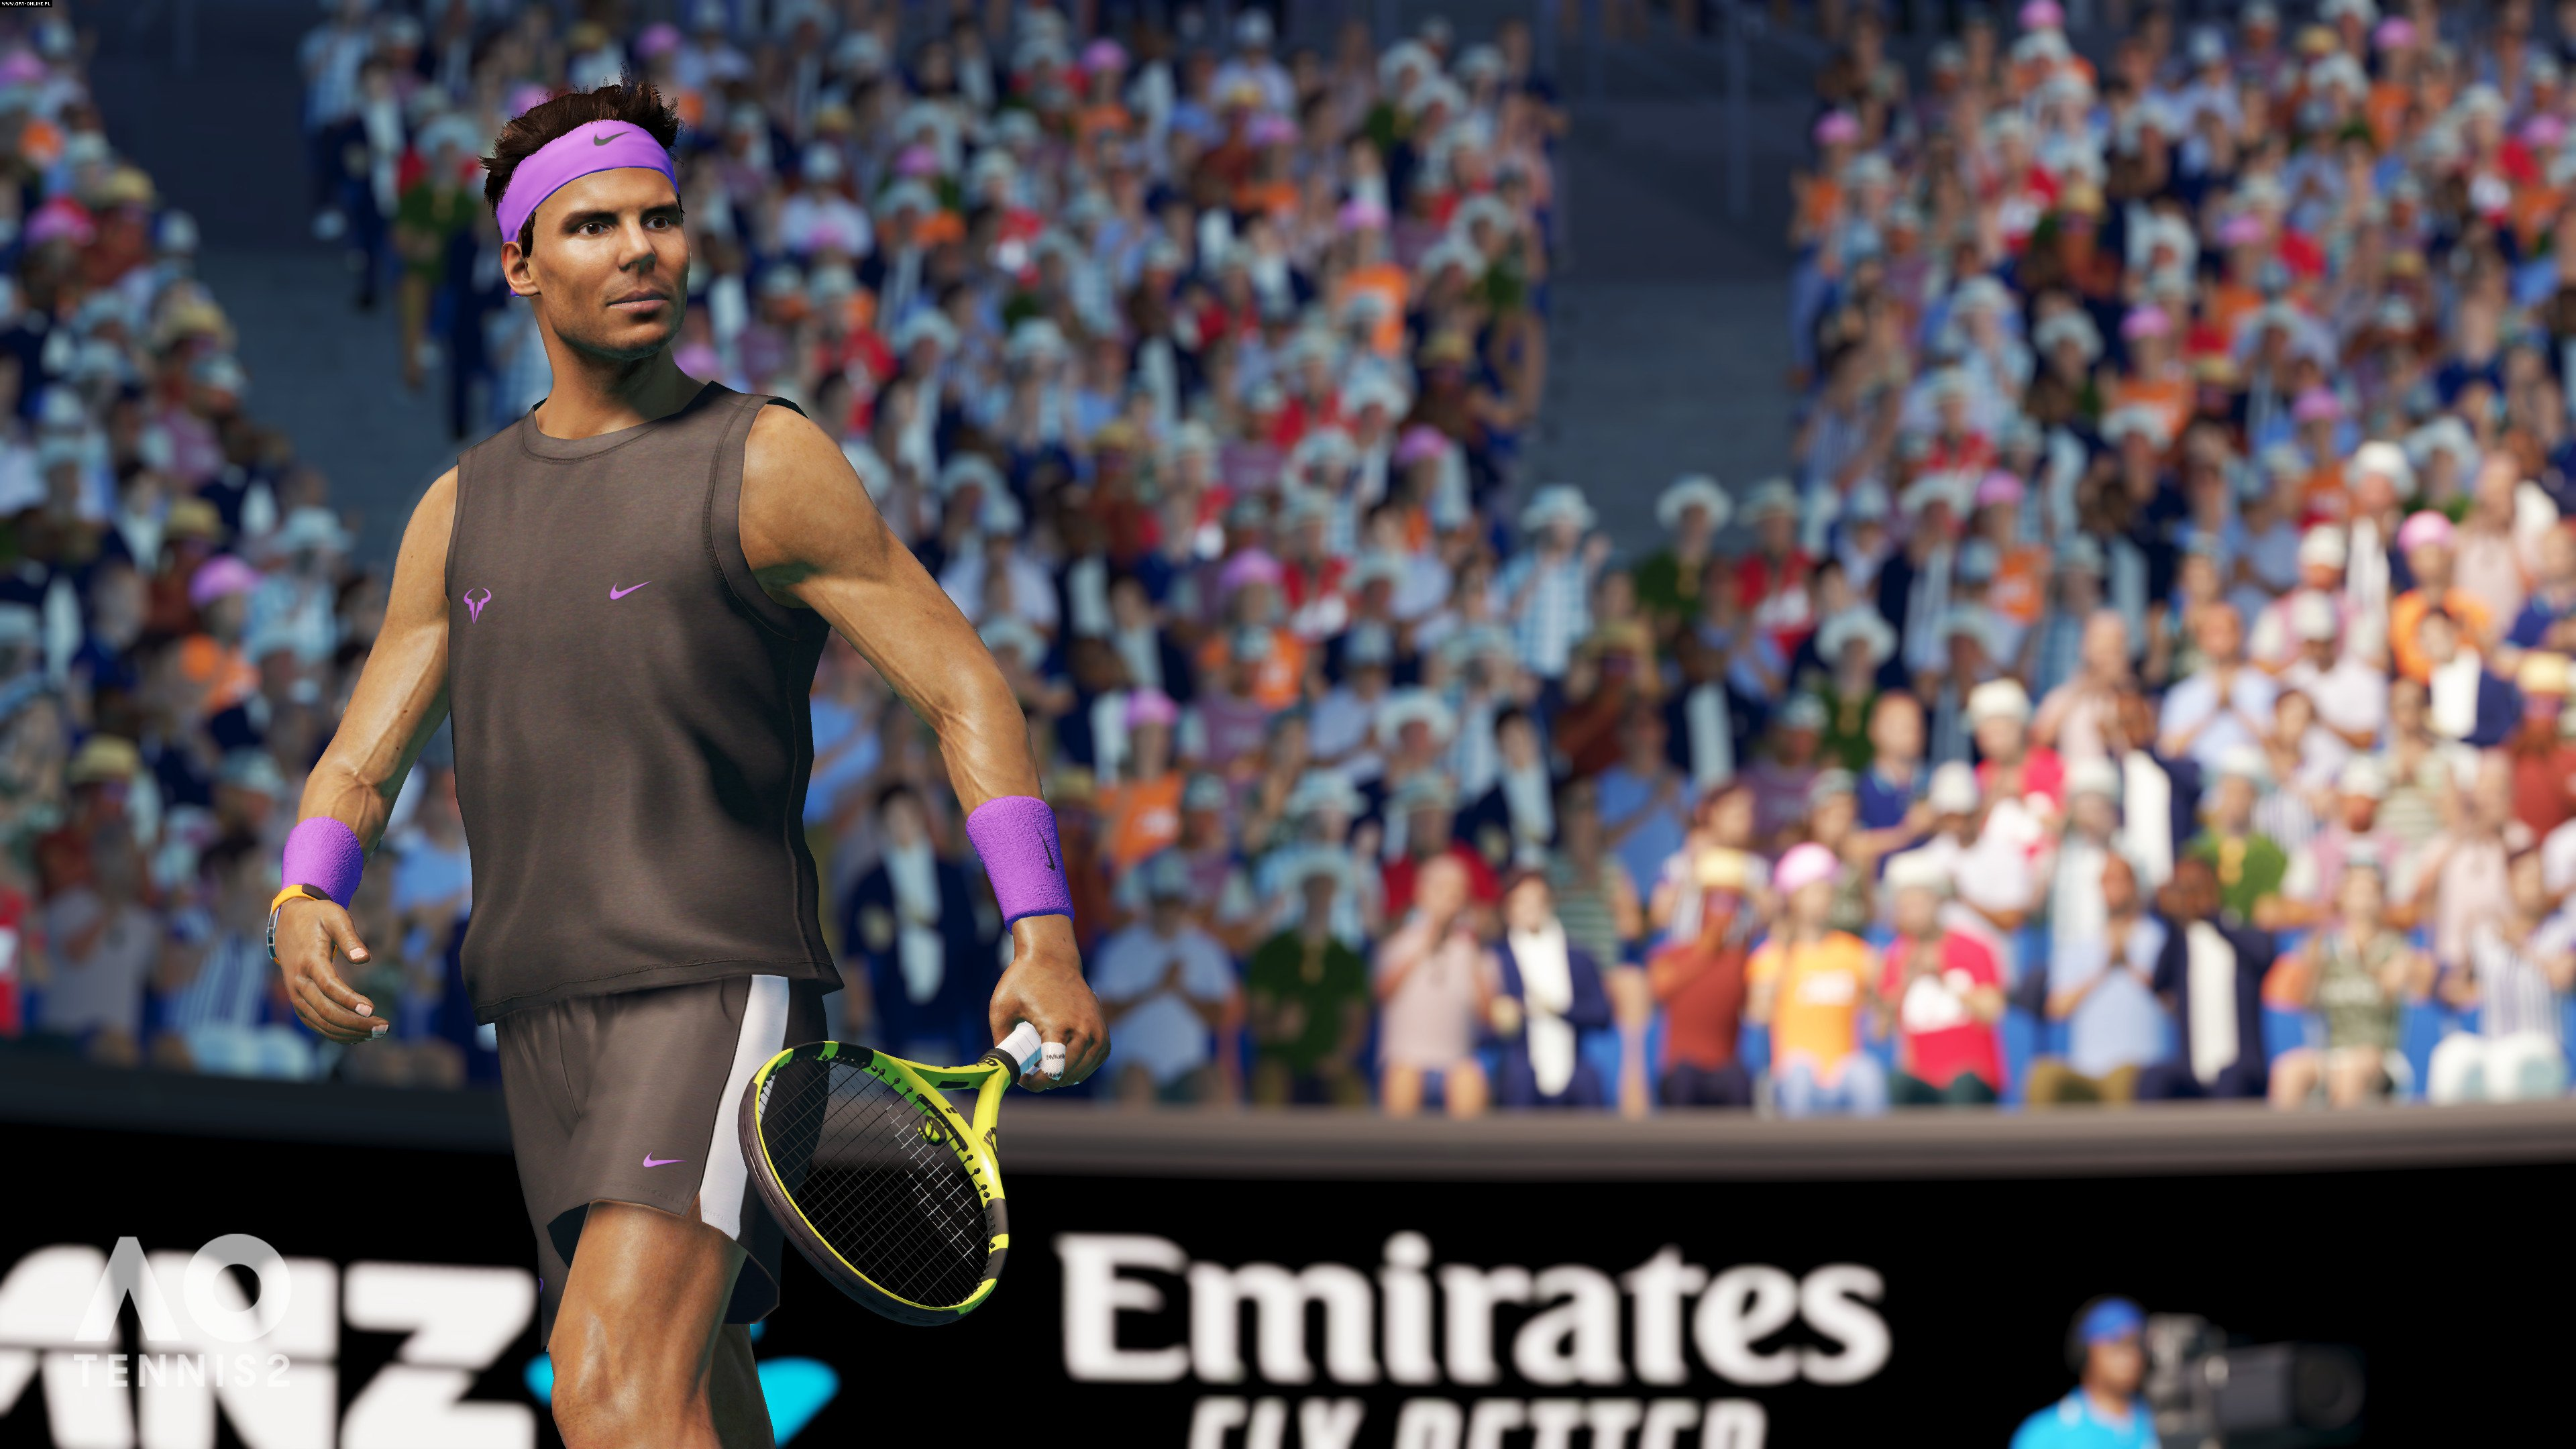 AO Tennis 2 PC, PS4, XONE, Switch Games Image 4/9, Big Ant Studios, Bigben Interactive